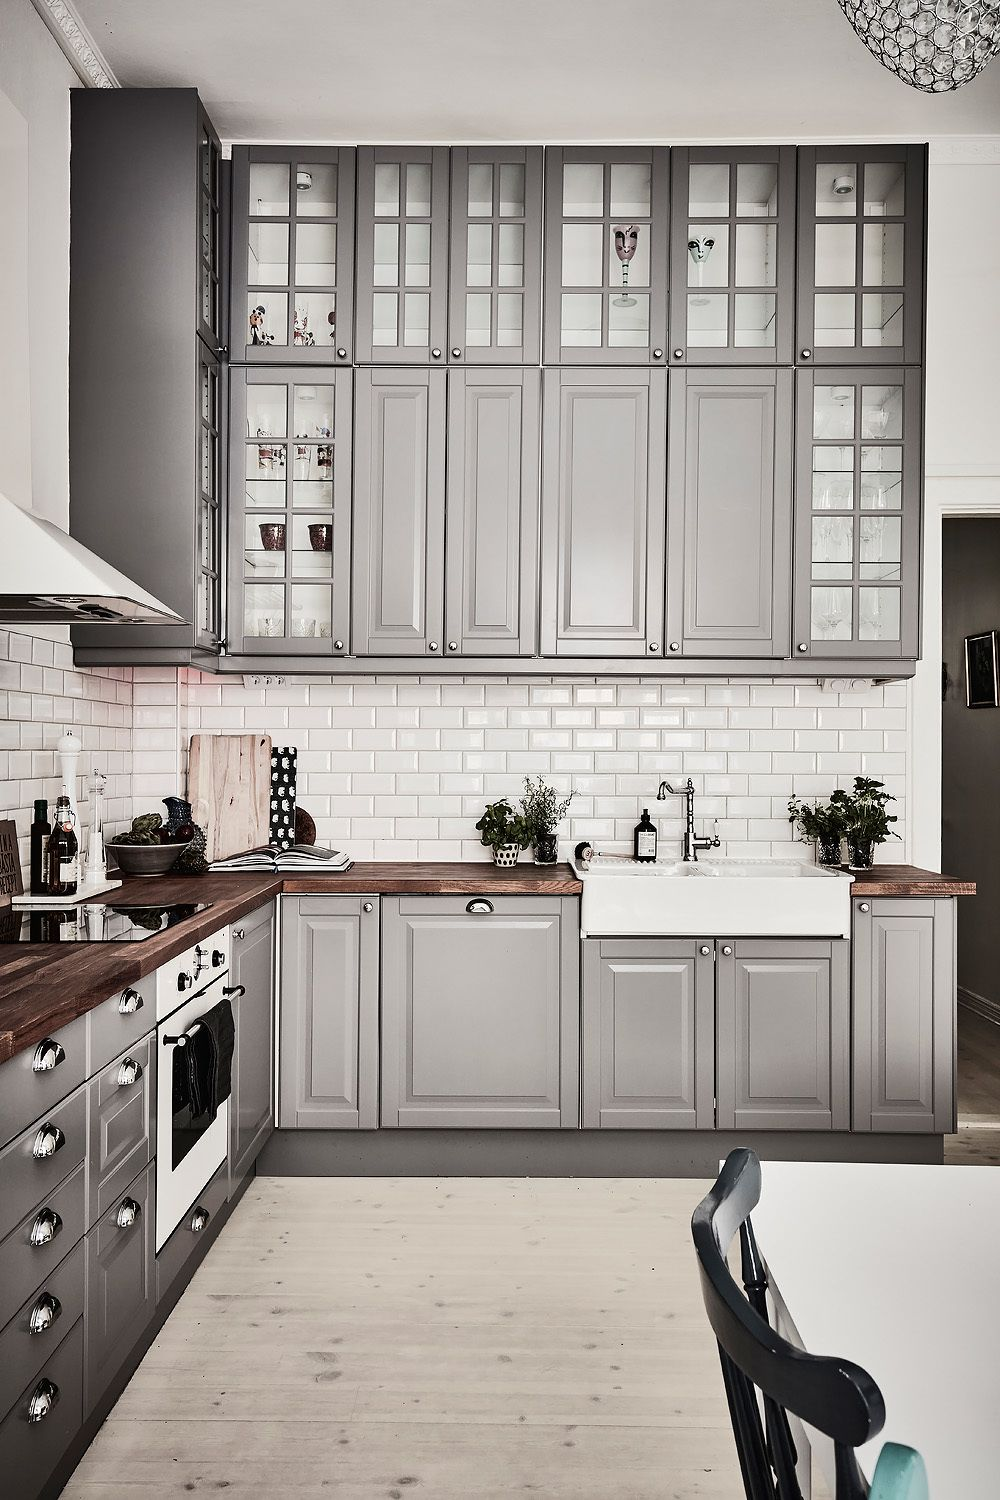 Inspiring Kitchens You Won\u002639;t Believe are IKEA  Gray cabinets, Kitchens and Grey kitchen cabinets